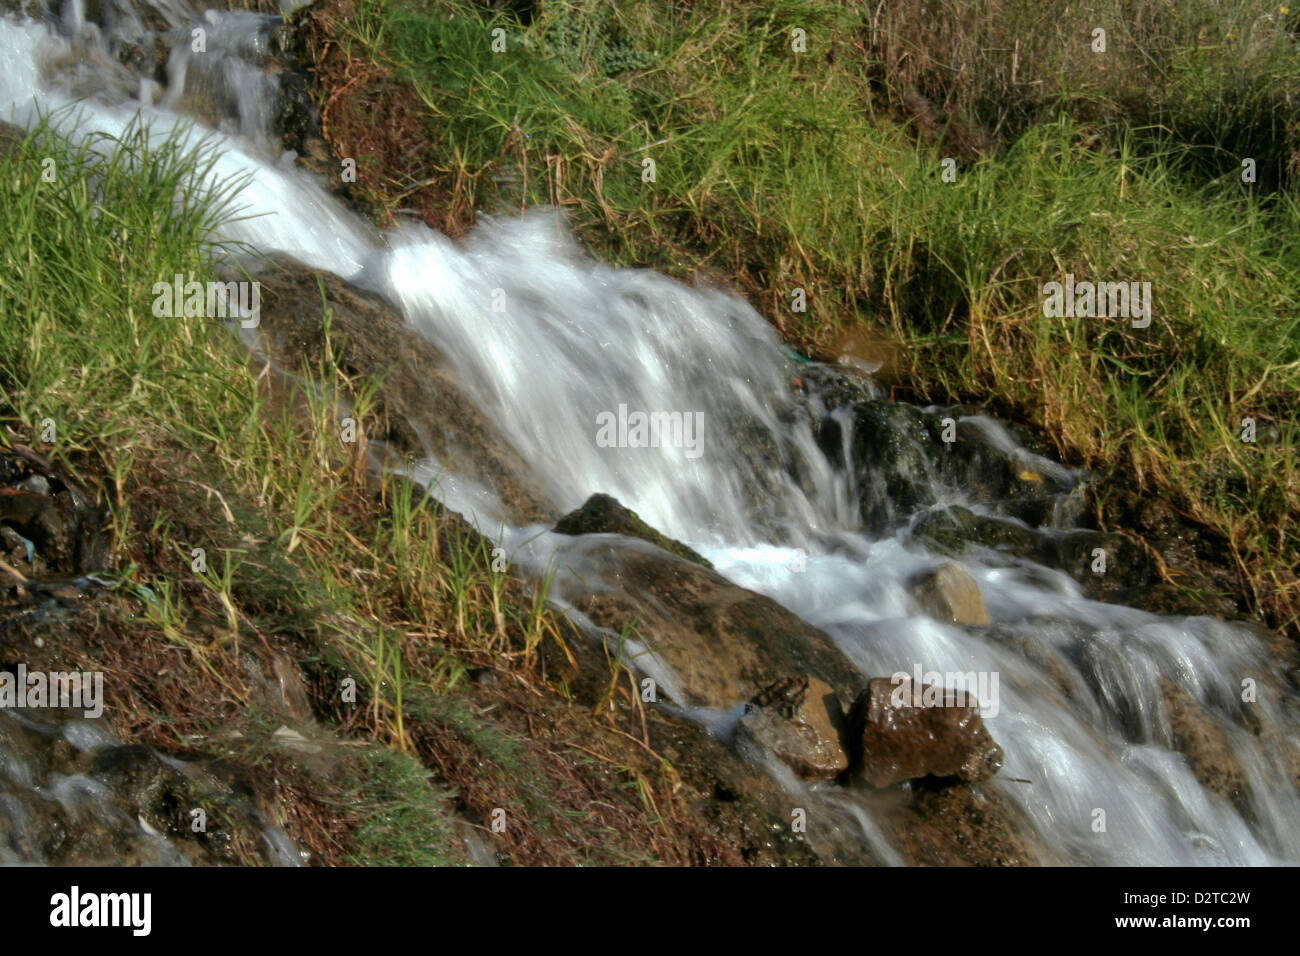 Blurred view of water rushing down the slope of mountain - Stock Image